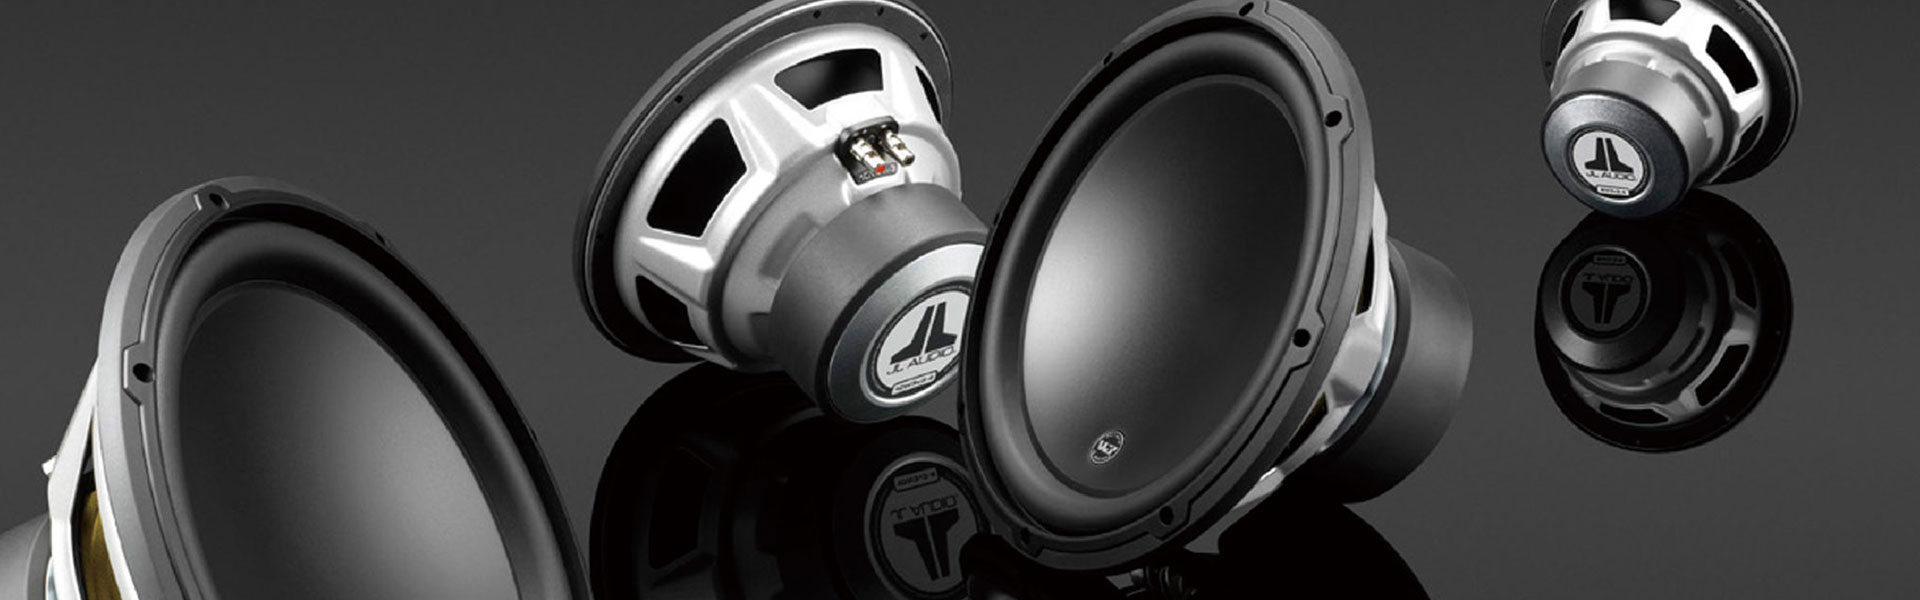 car sound center subwoofer